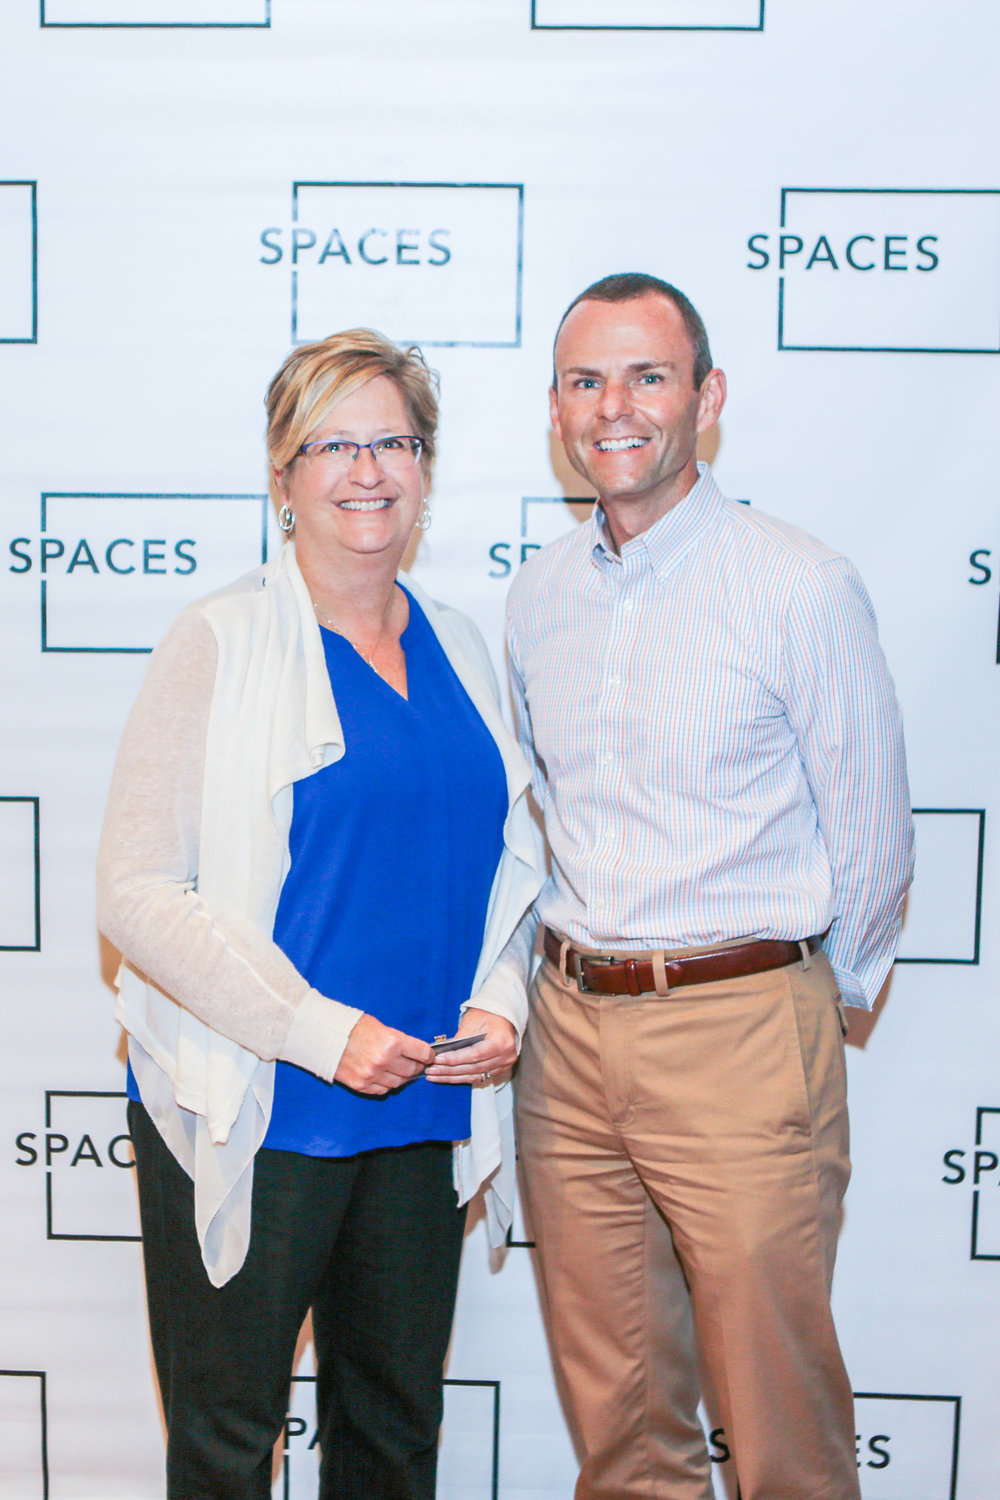 Spaces Event-1027.jpg